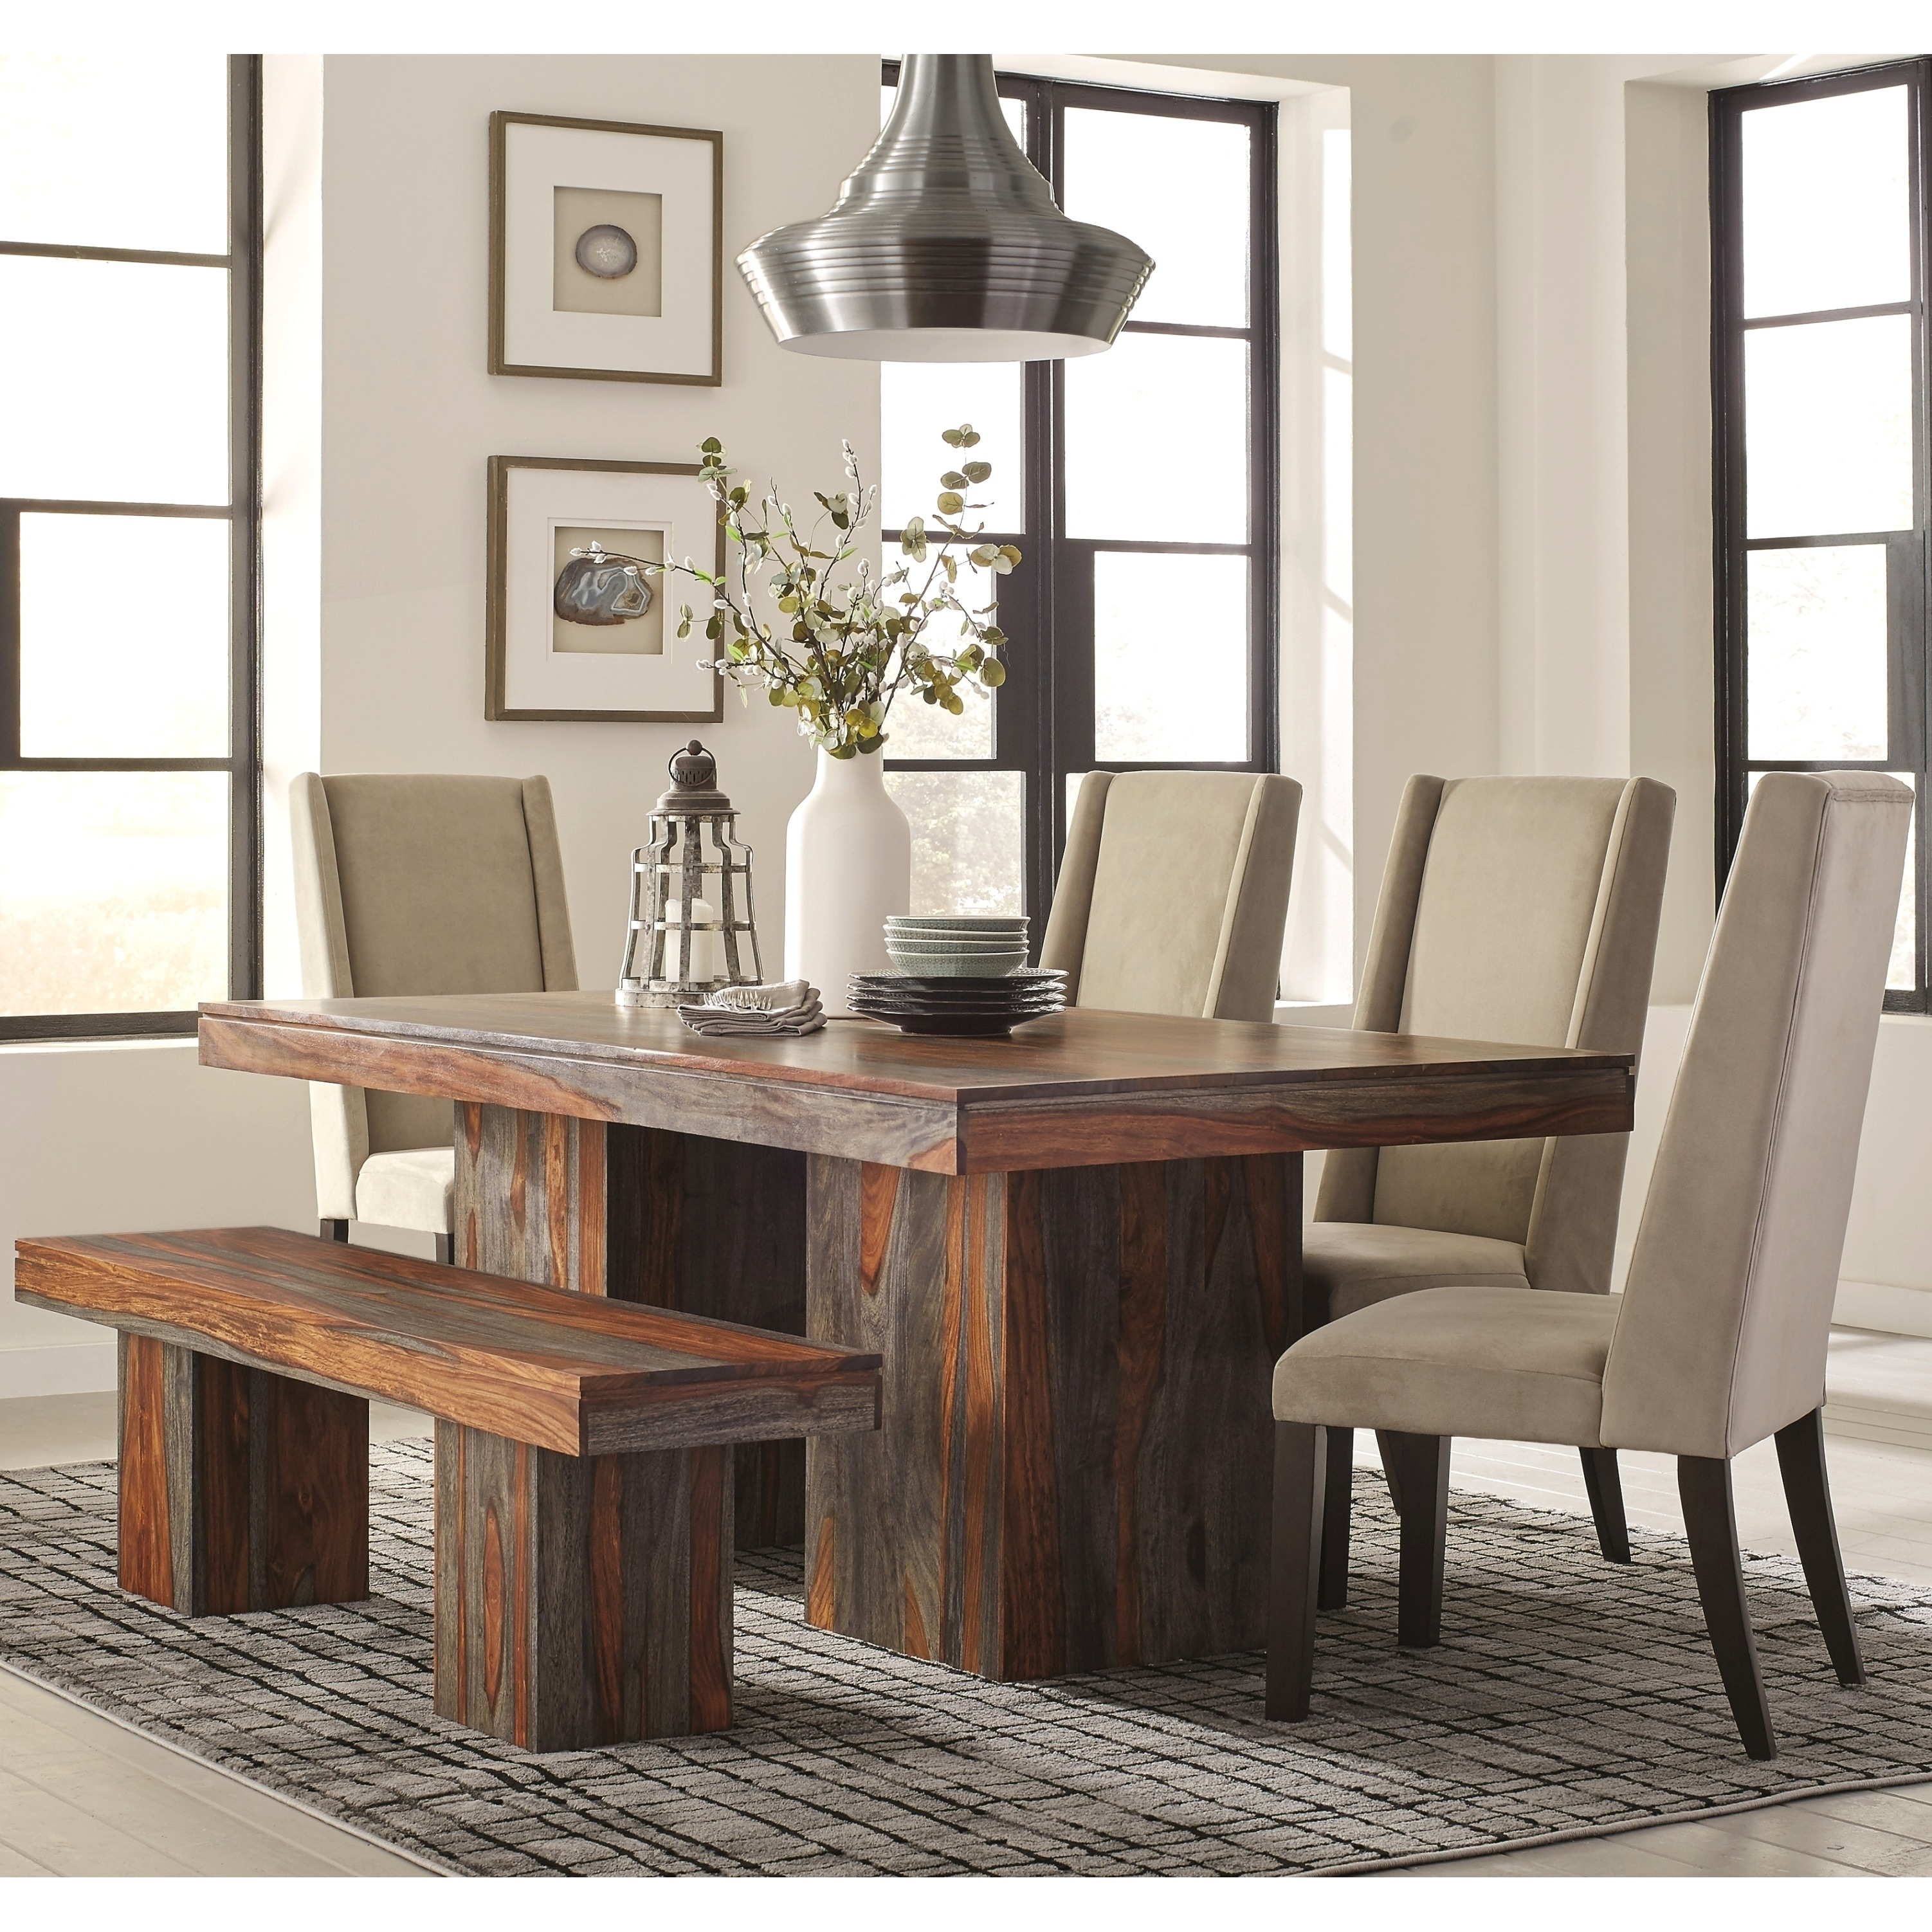 Astonishing Modern Bold Design Sheesham Wood Dining Set With Upholstered Chairs And Bench Ncnpc Chair Design For Home Ncnpcorg